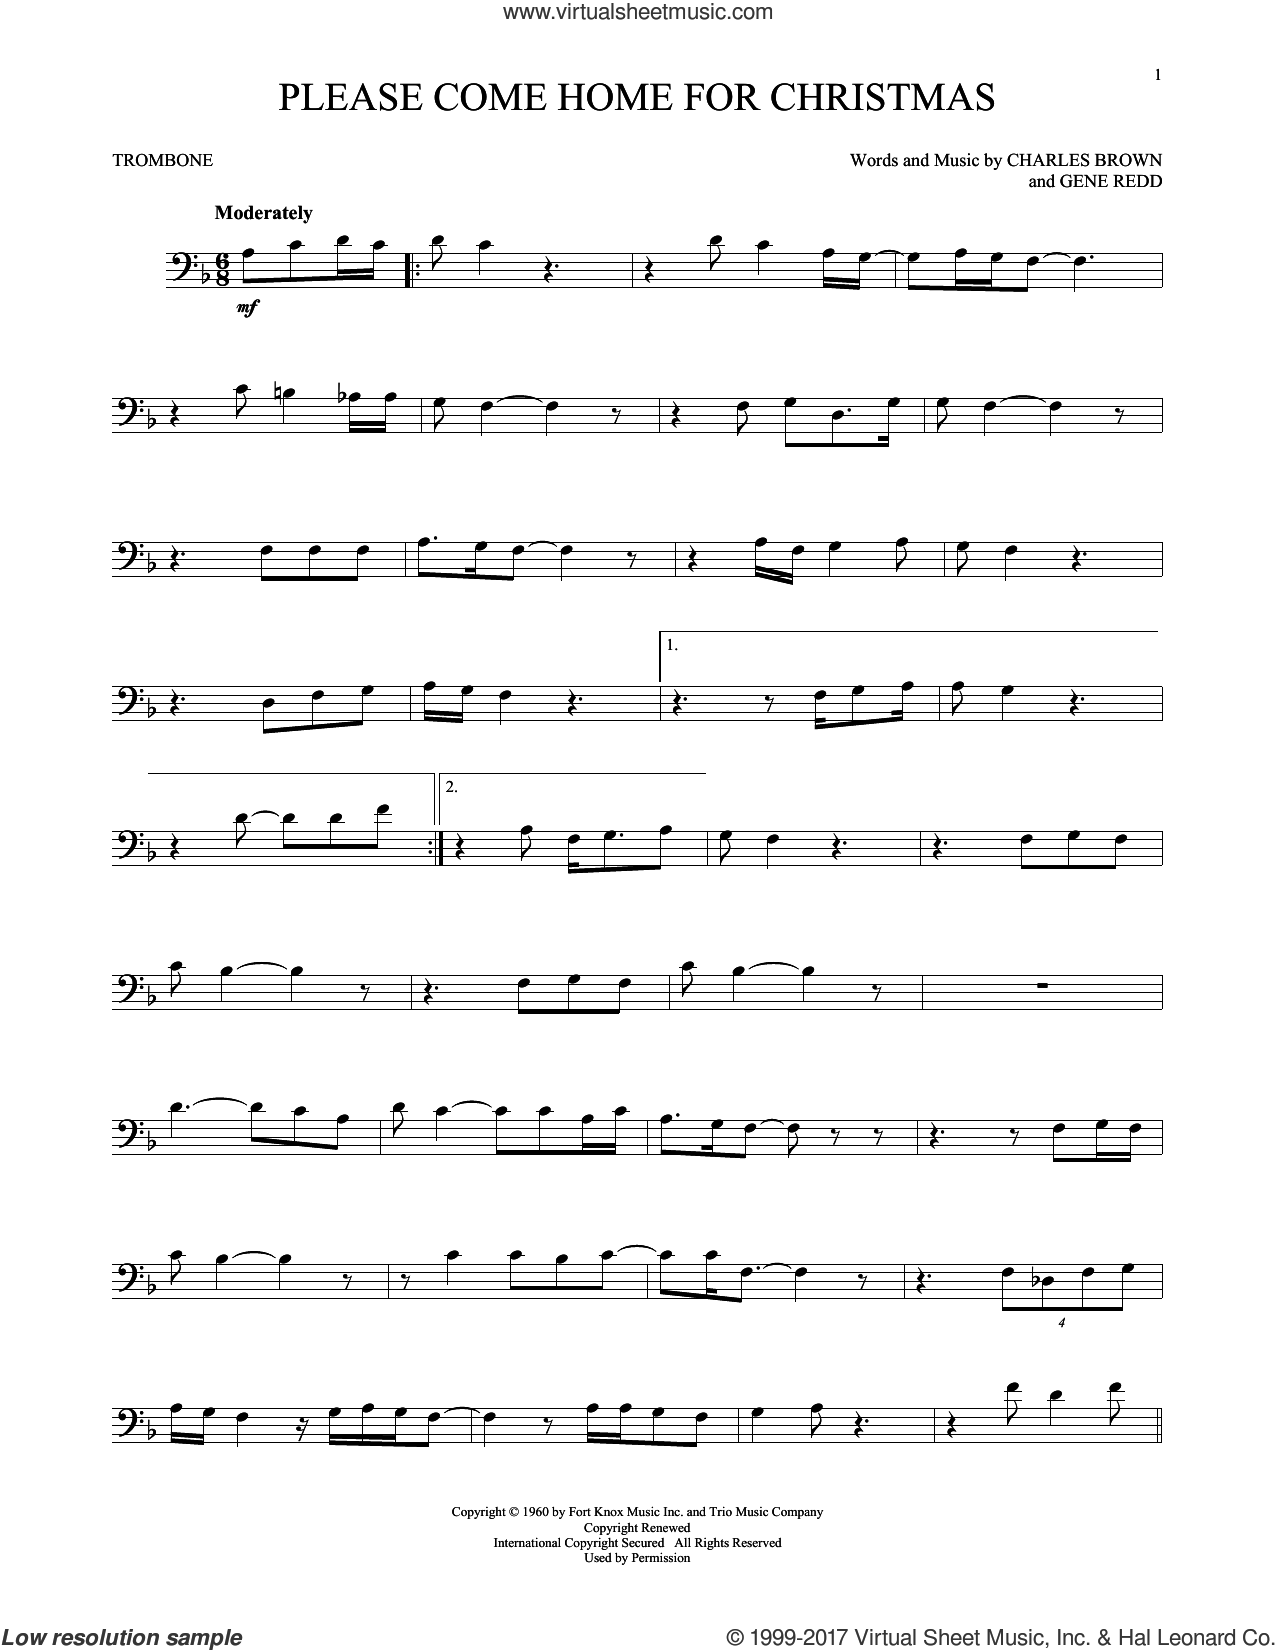 Please Come Home For Christmas sheet music for trombone solo by Charles Brown, Josh Gracin, Martina McBride, Willie Nelson and Gene Redd, intermediate skill level